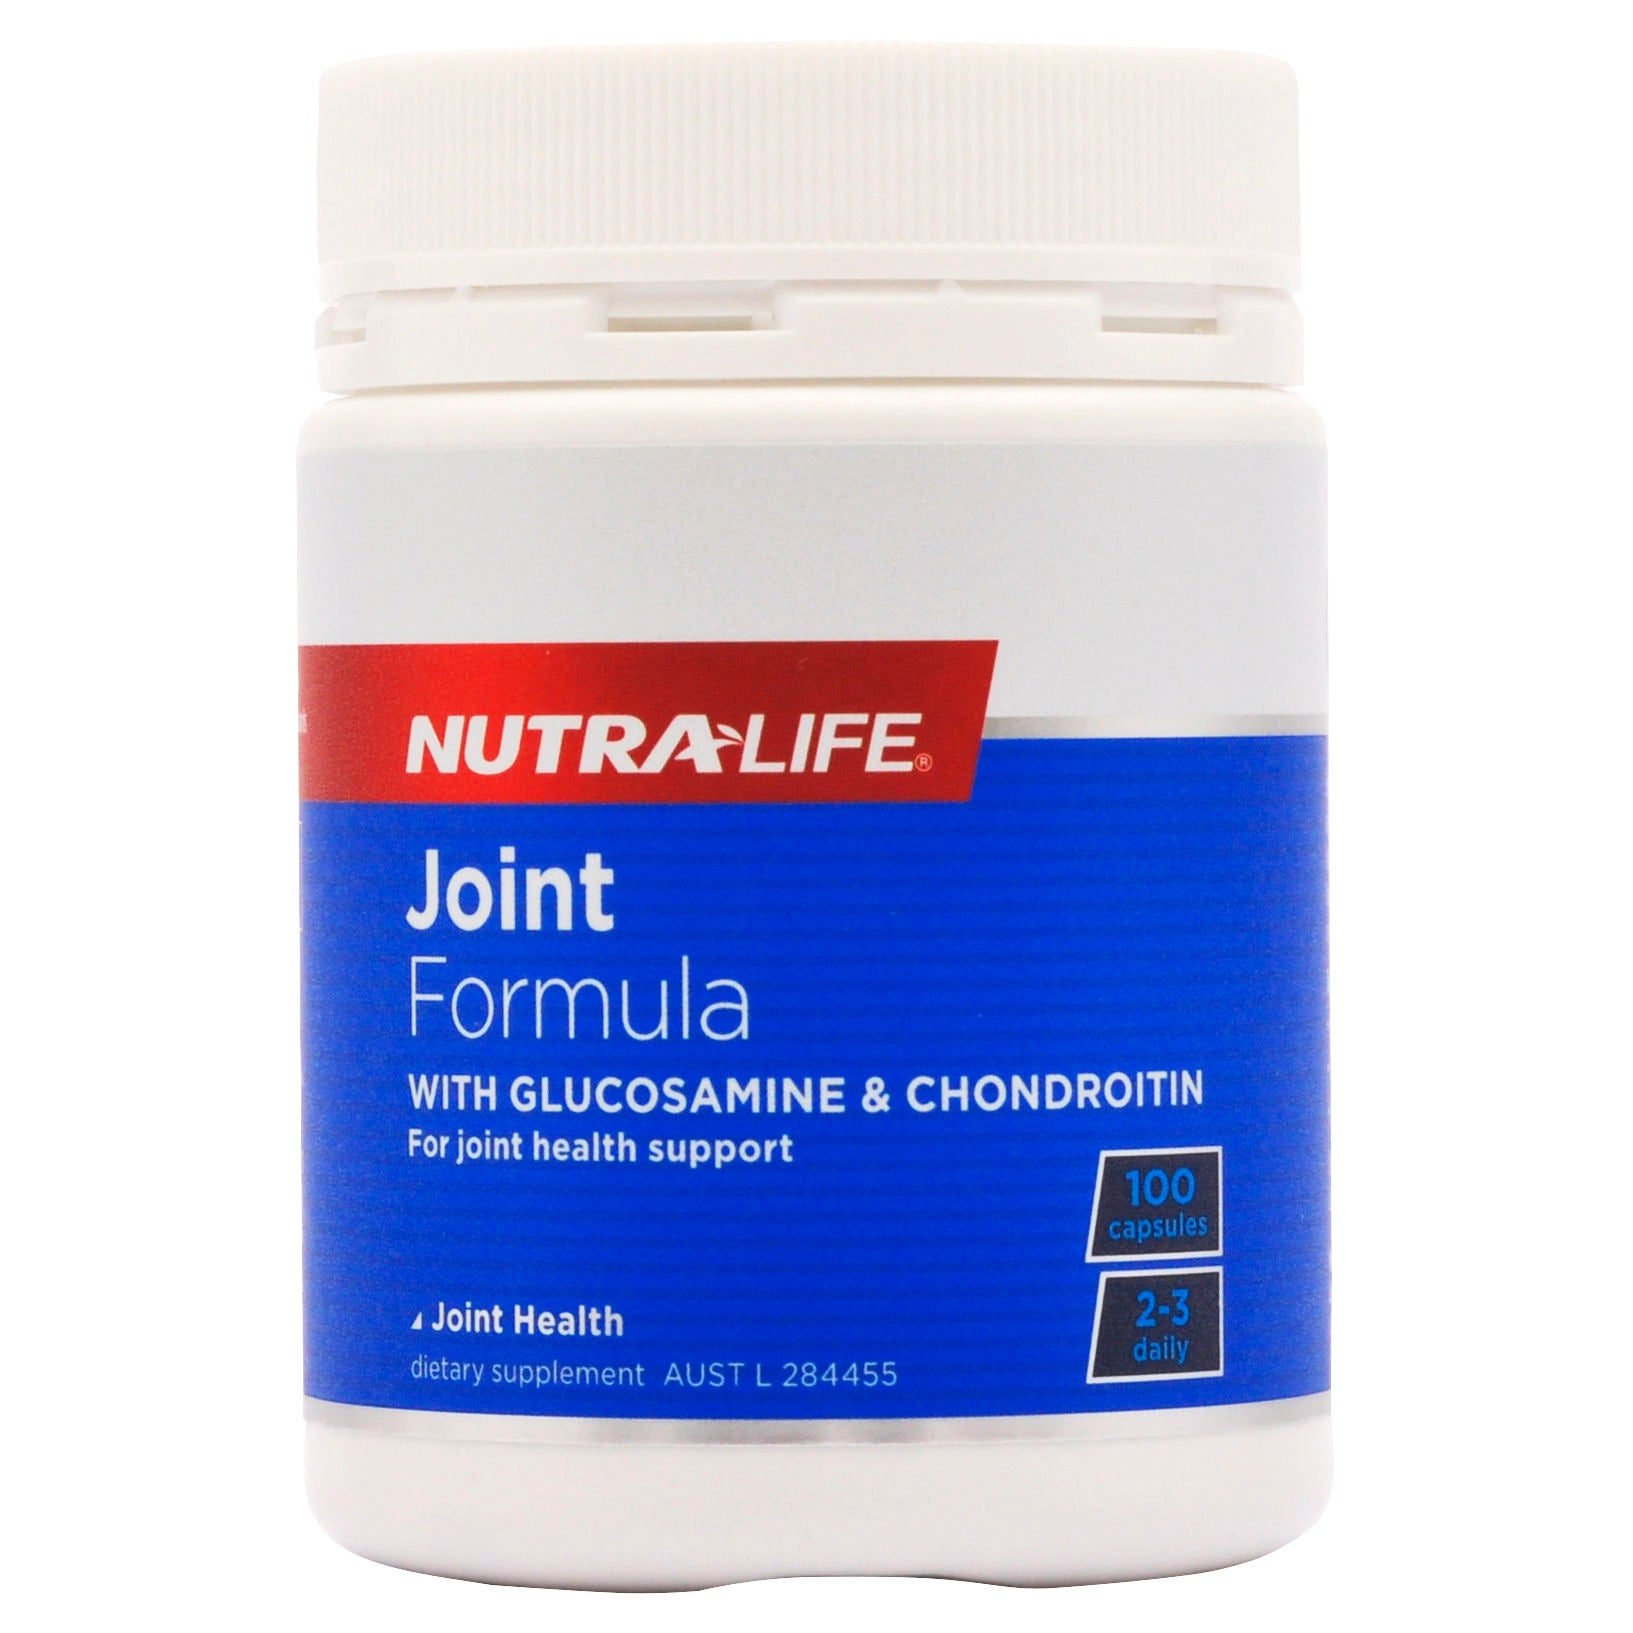 Nutra-Life Joint Formula 100 Capsules